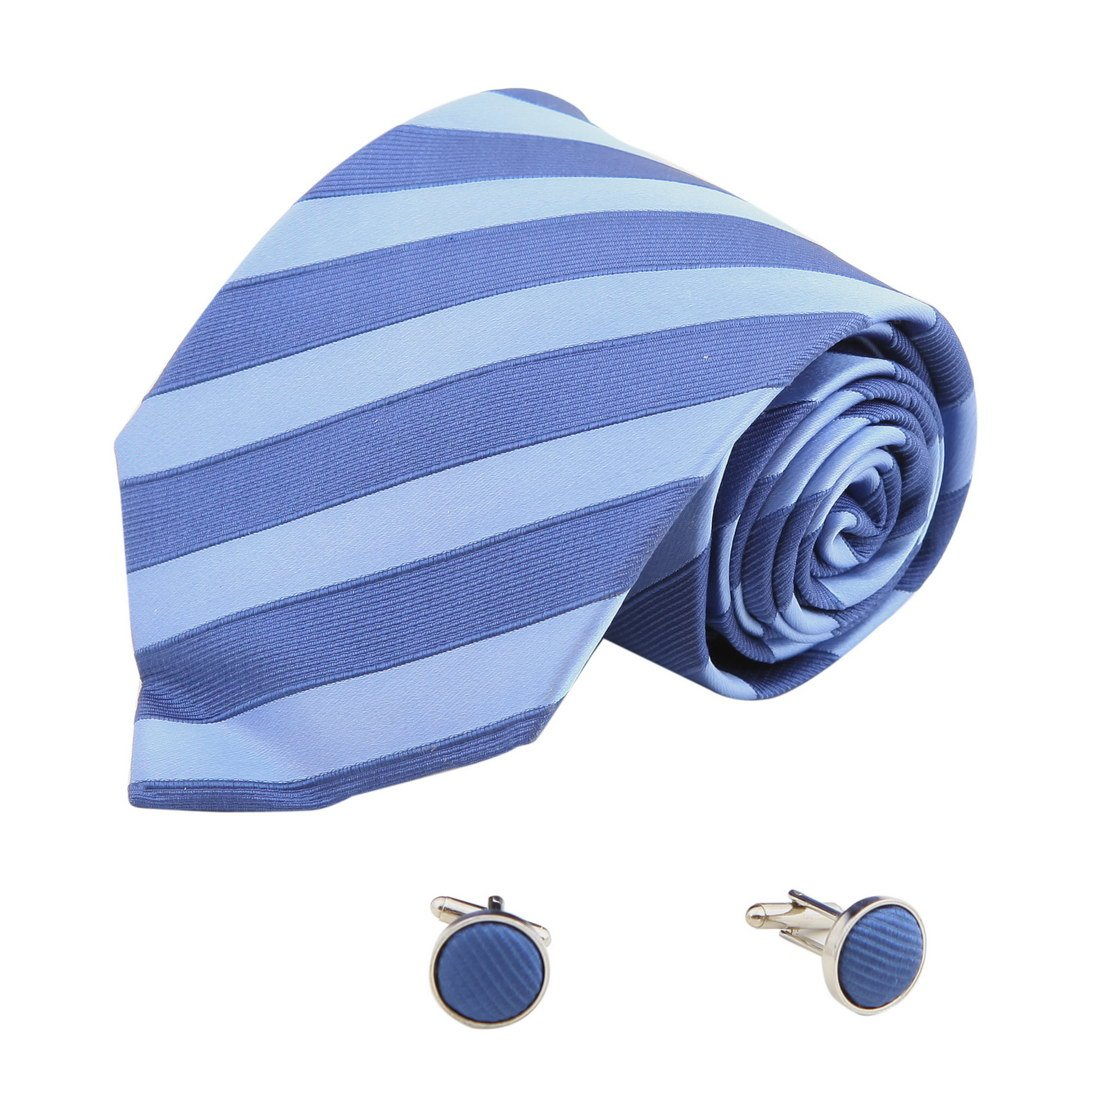 8117 Navy Striped The Future Silk Ties Cufflinks Present Box Set By Y&G by Y&G (Image #1)